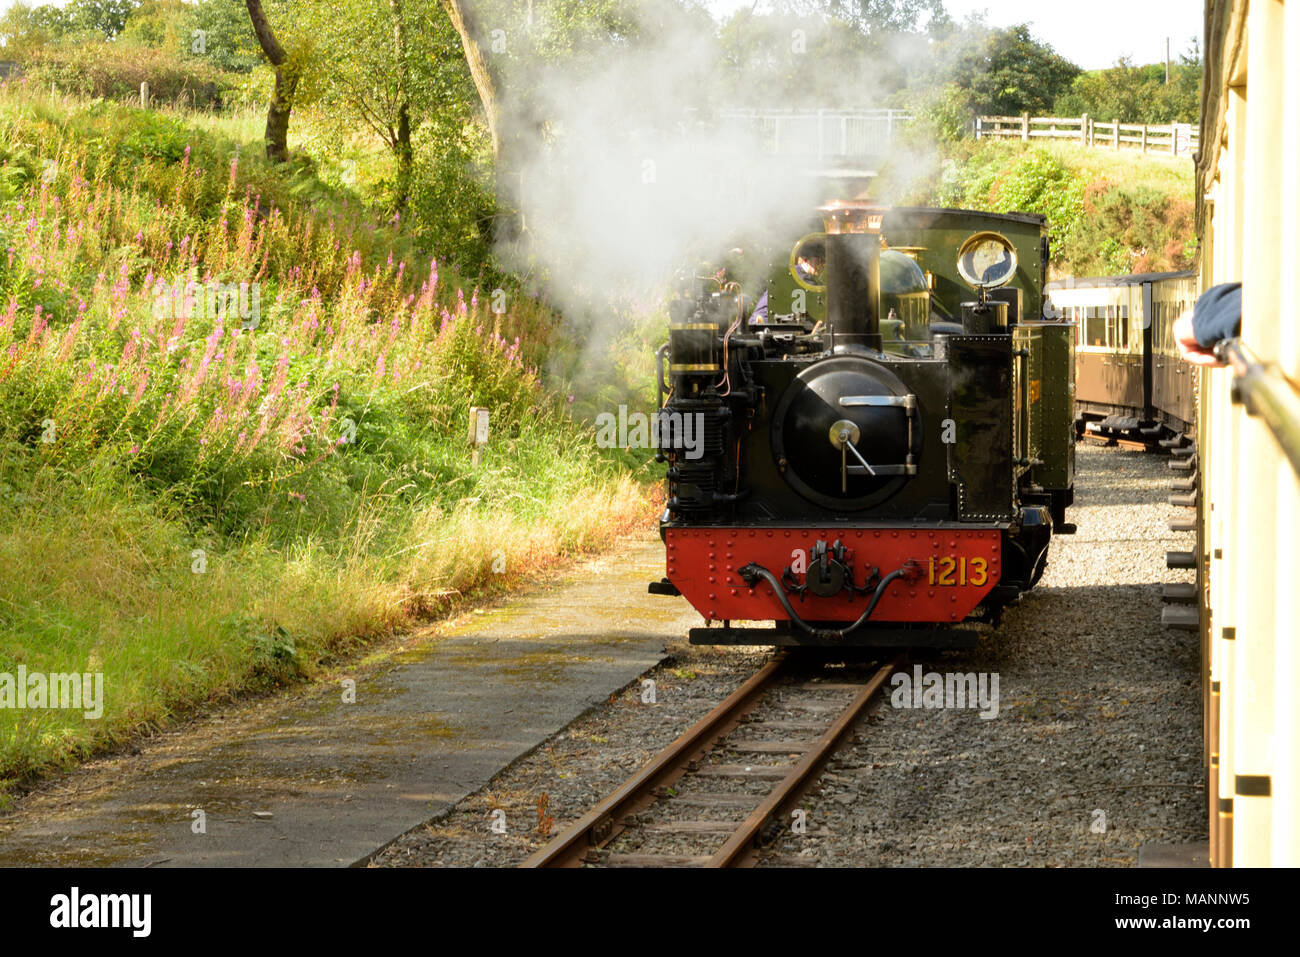 Great Western Locomotive changing ends of the train - Stock Image